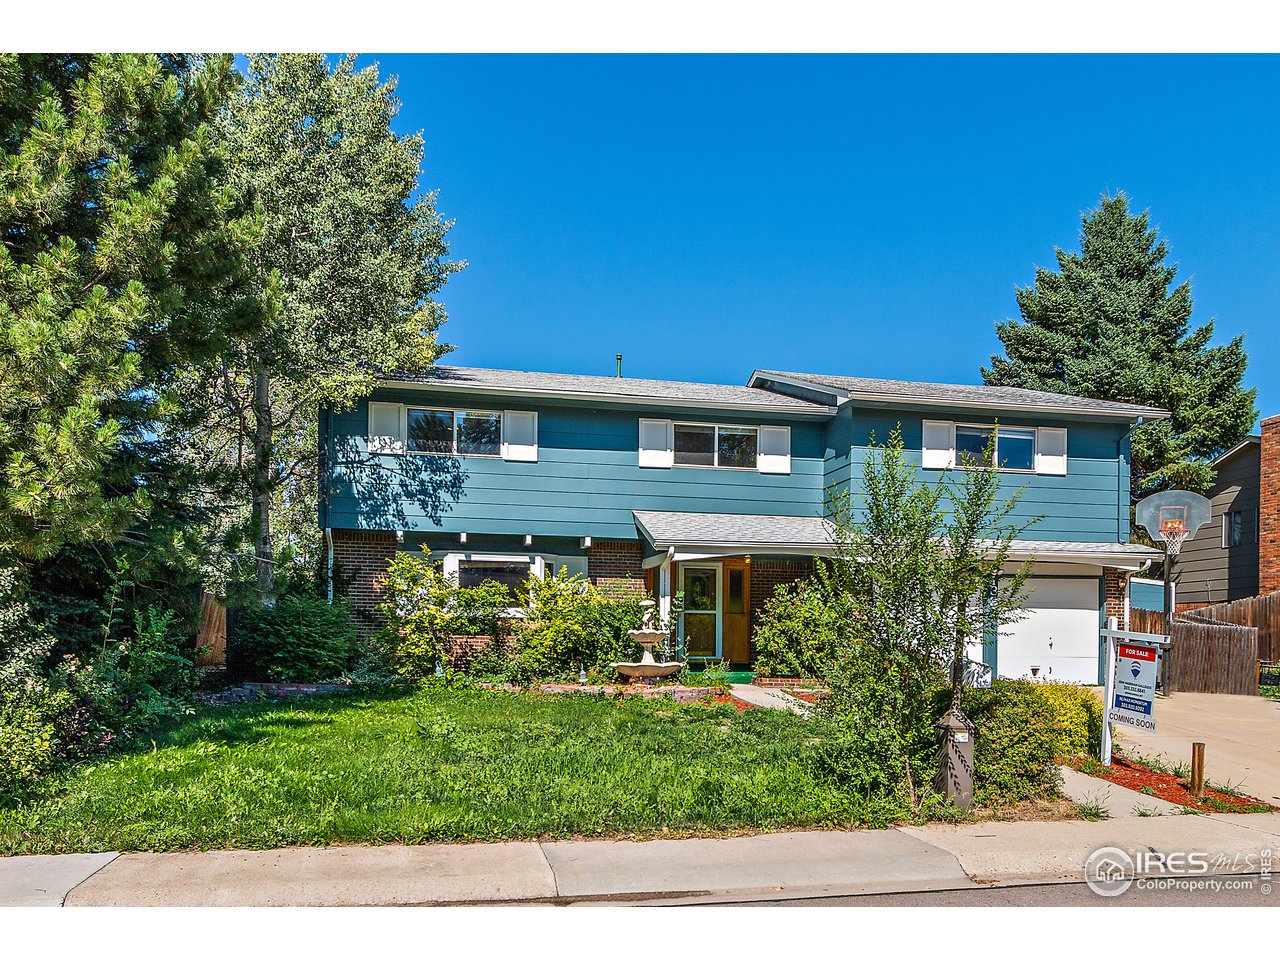 1327 S Lincoln St, Longmont CO 80501